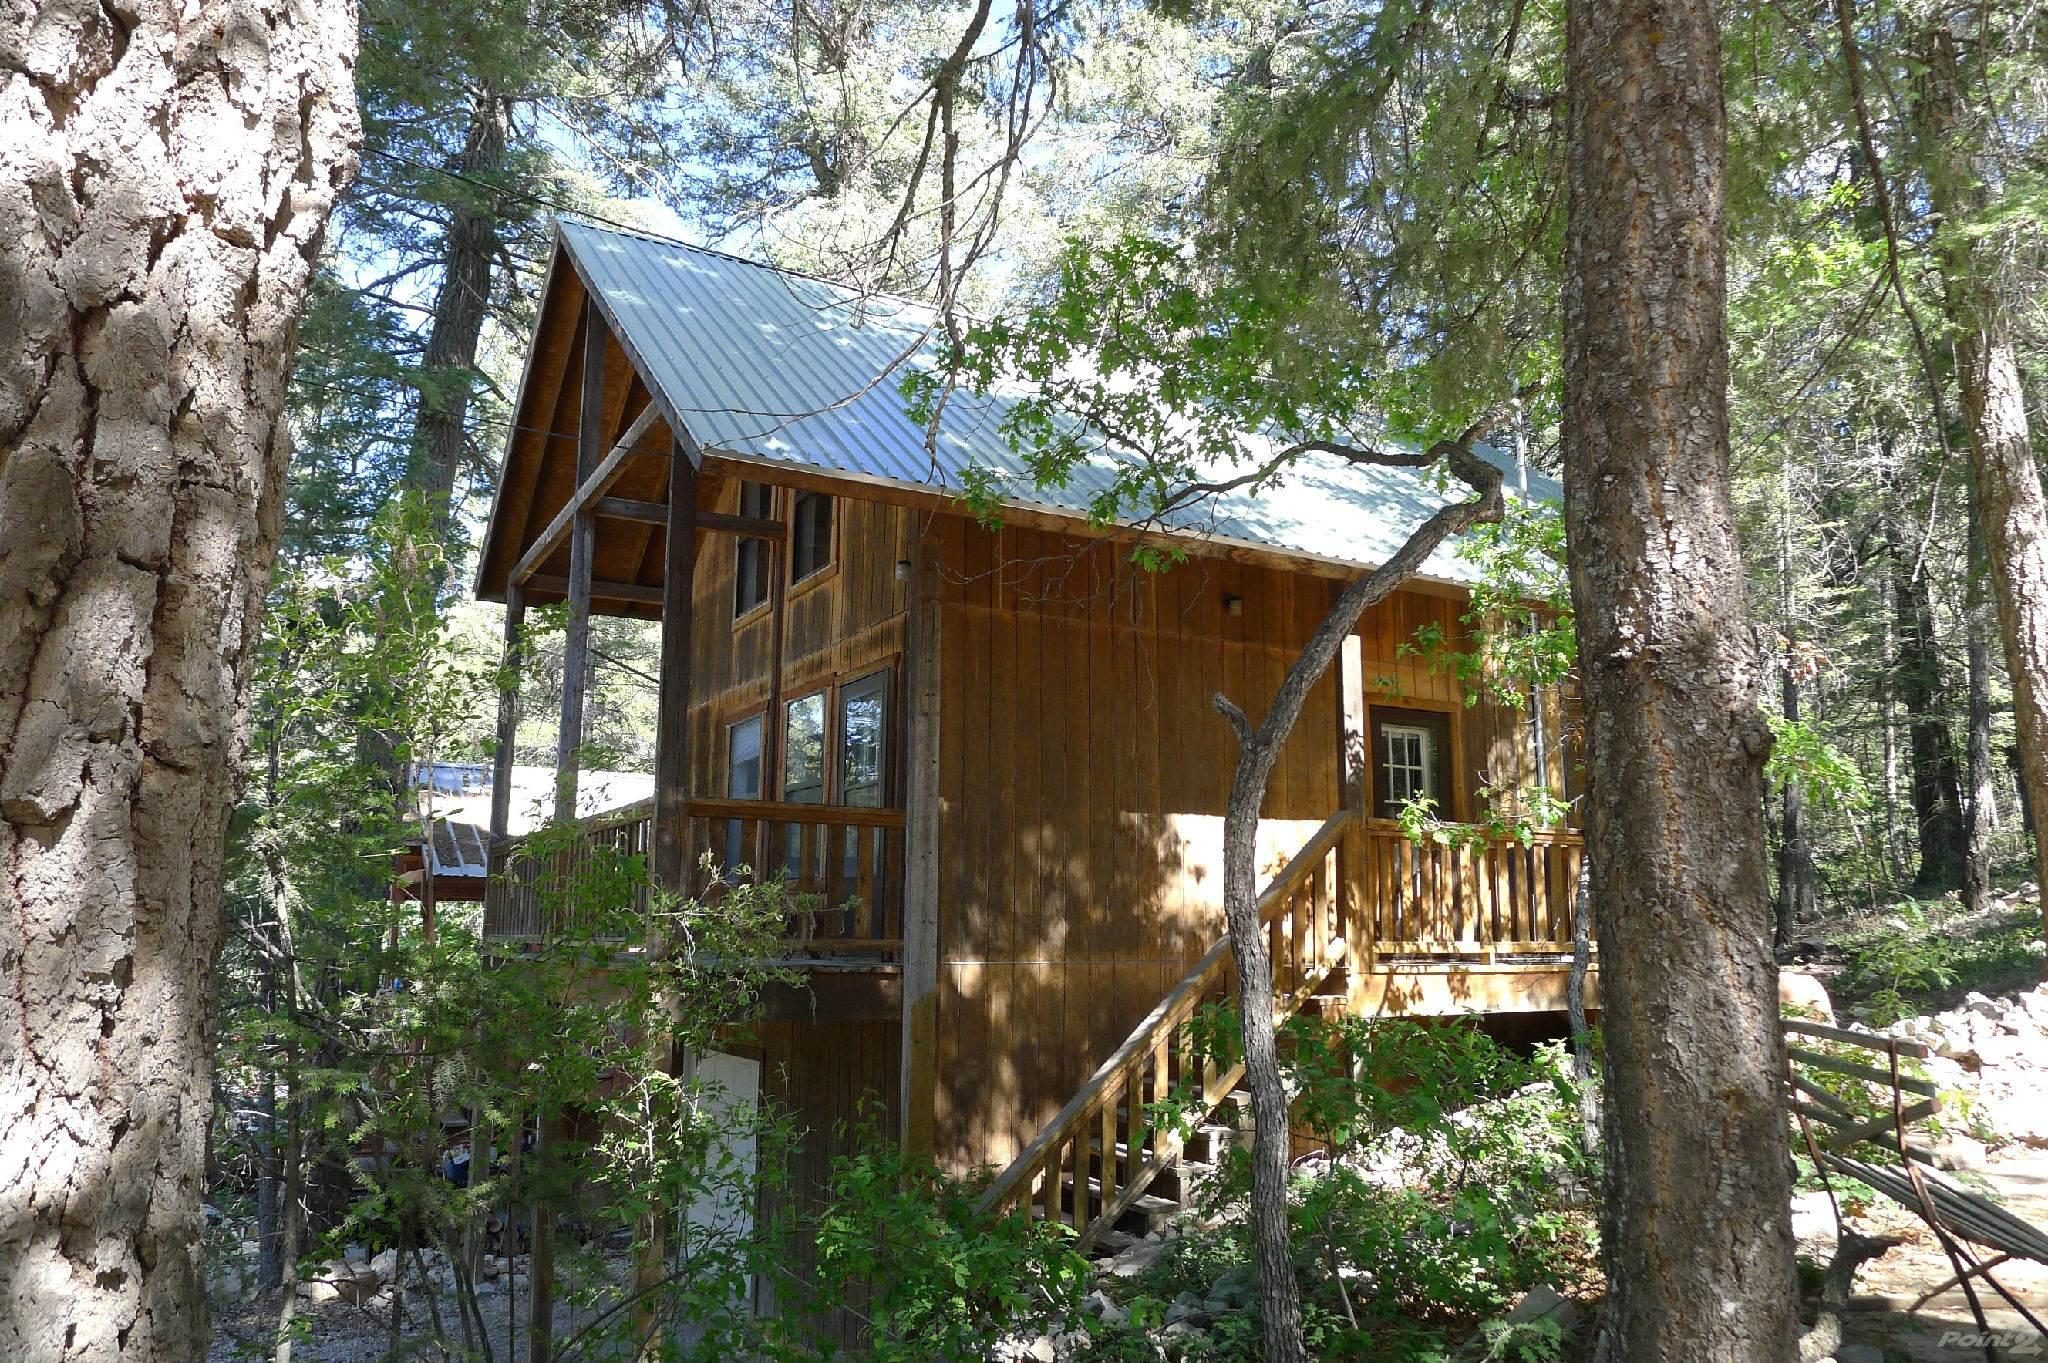 cabins airbnb in cloudcroft us new top rentals mexico